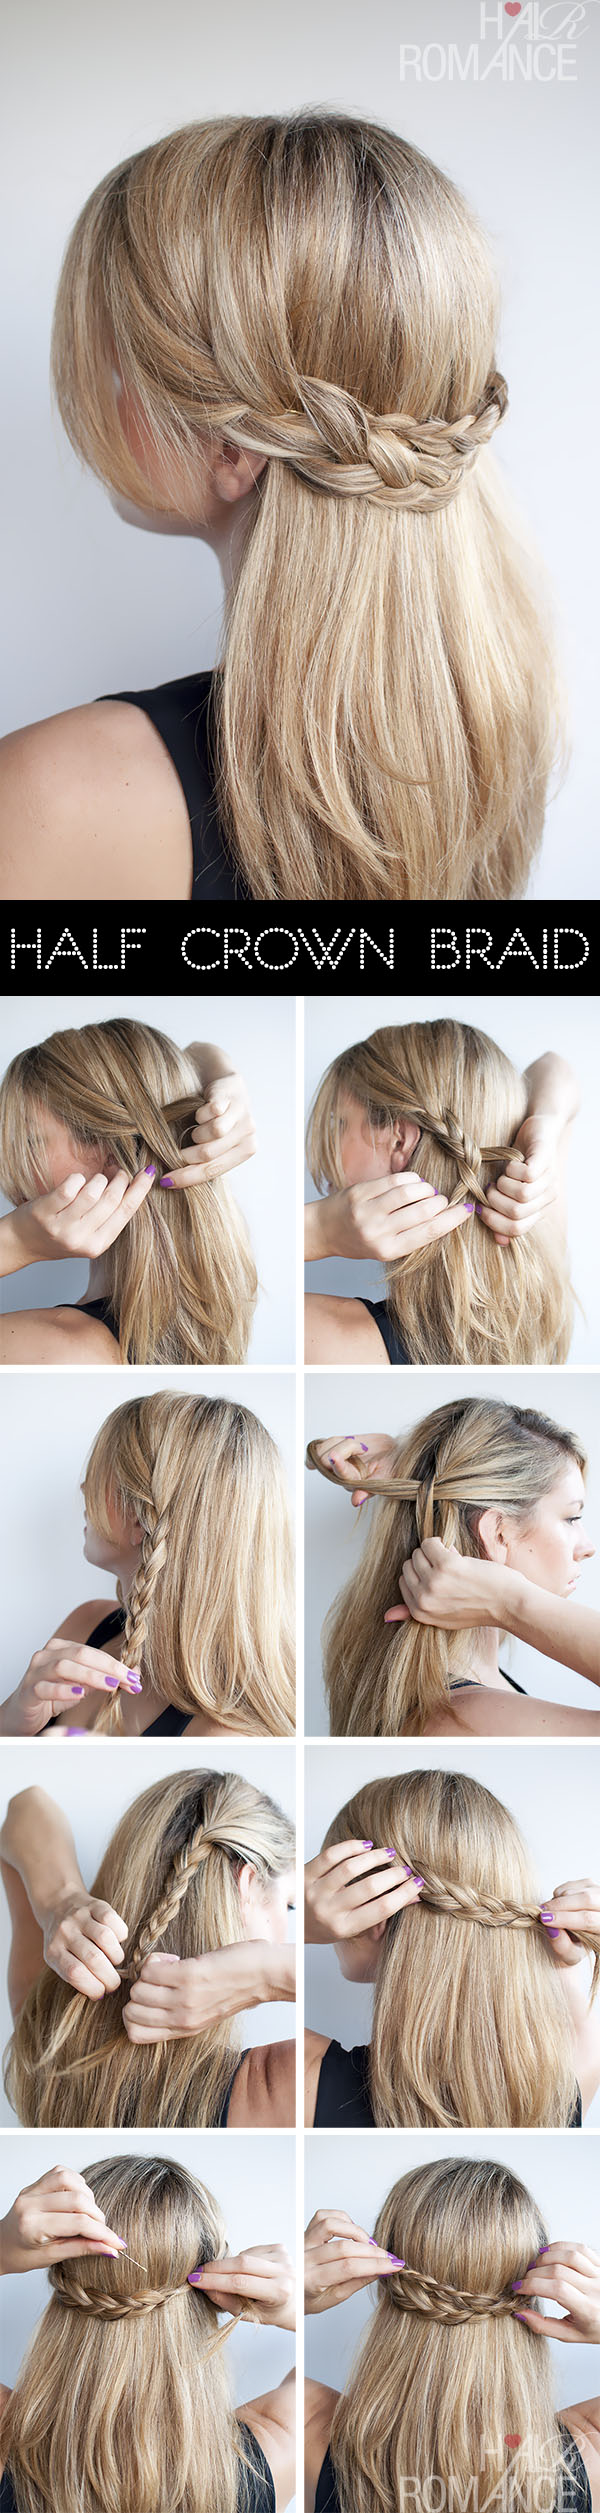 Braids Inspiration For Your Everyday Hairstyle Mole Empire